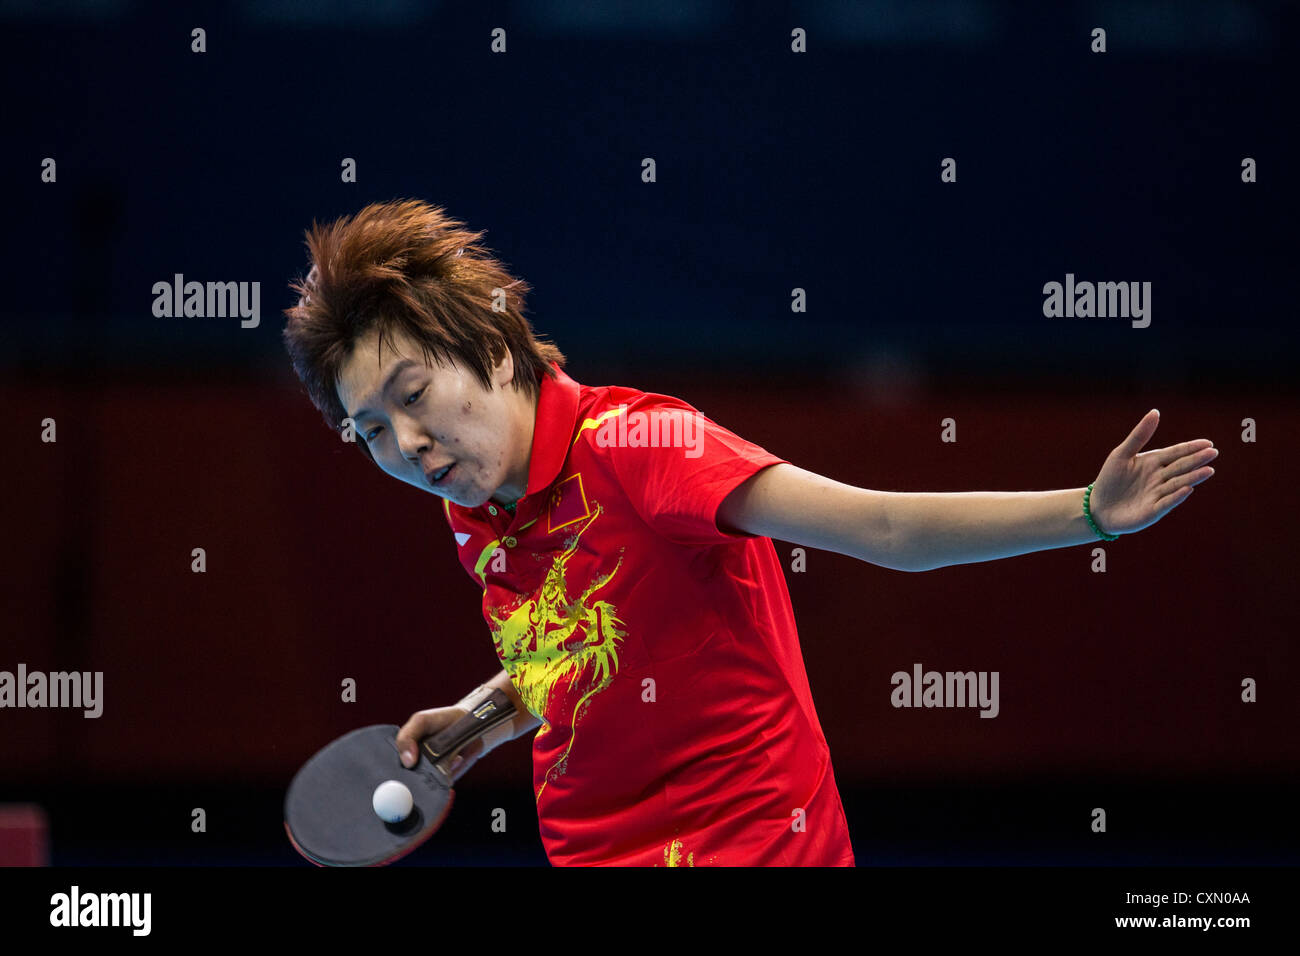 Li Xiaoxia (CHN) wins the women's table tennis gold medal in Olympic Summer Games, London 2012 - Stock Image